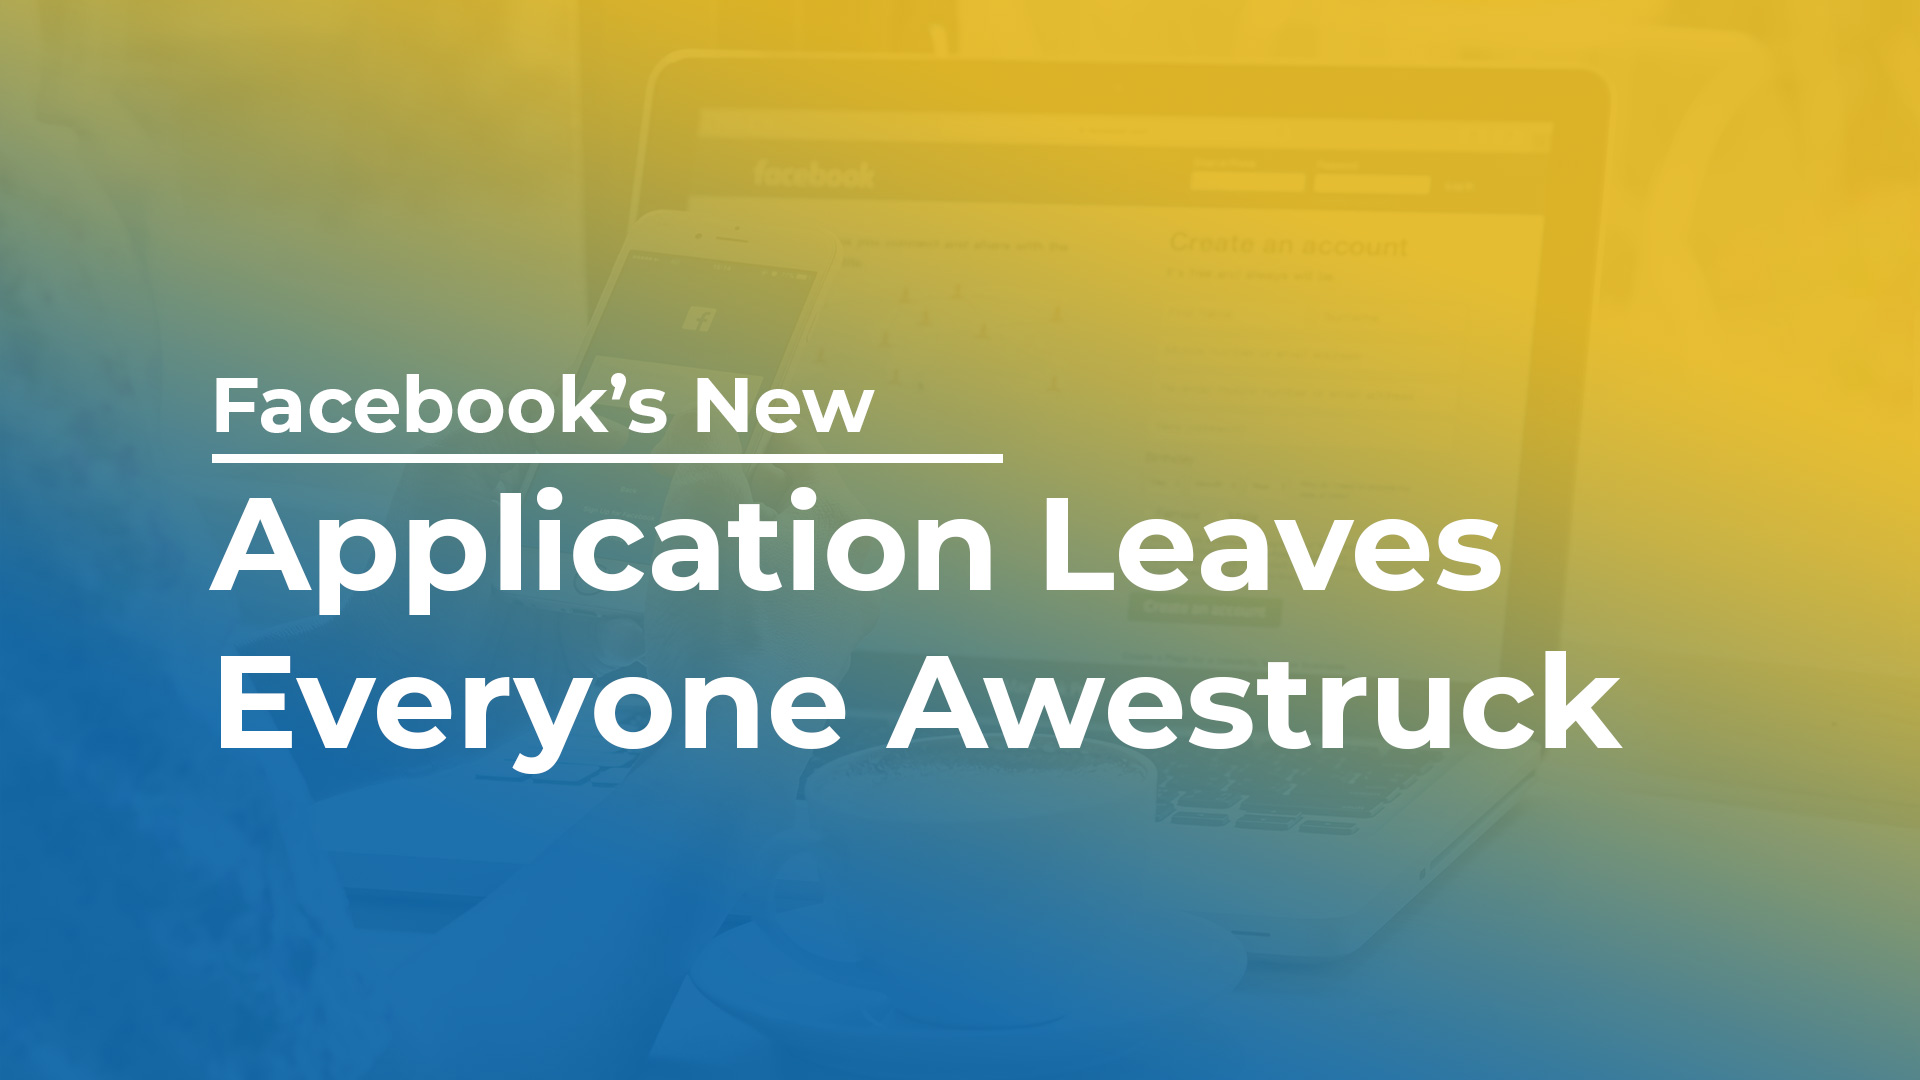 Facebook's New Application Leaves Everyone Awestruck